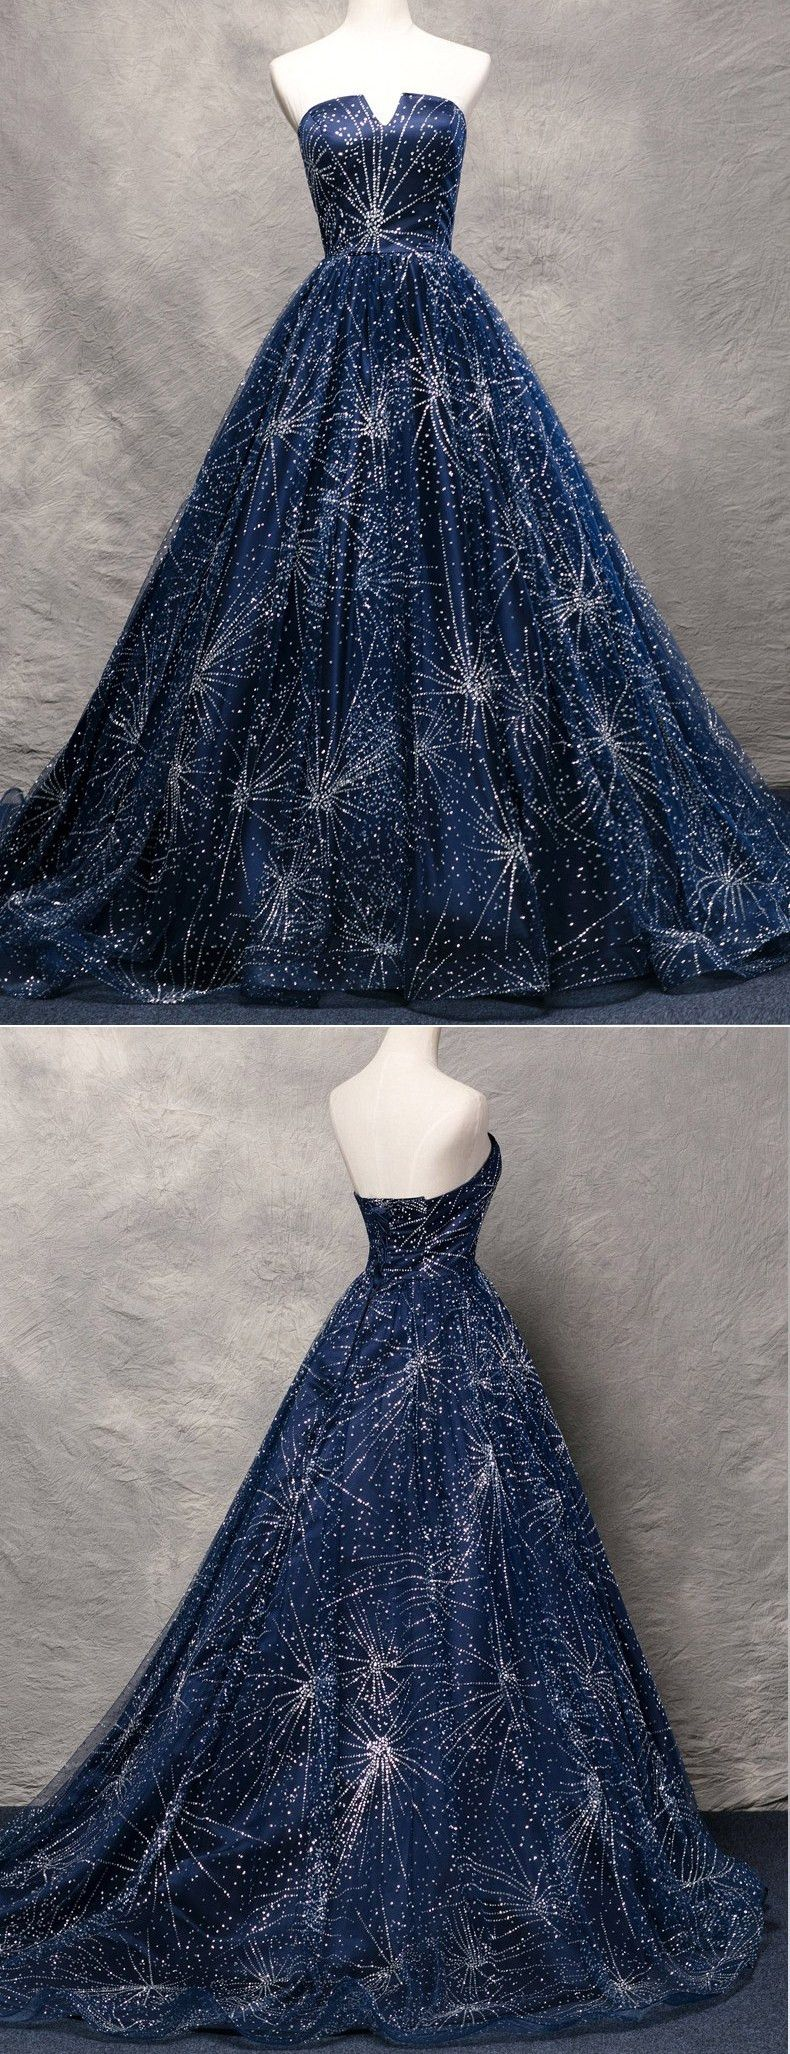 Glitters aline strapless sweep train navy blue organza prom dress w